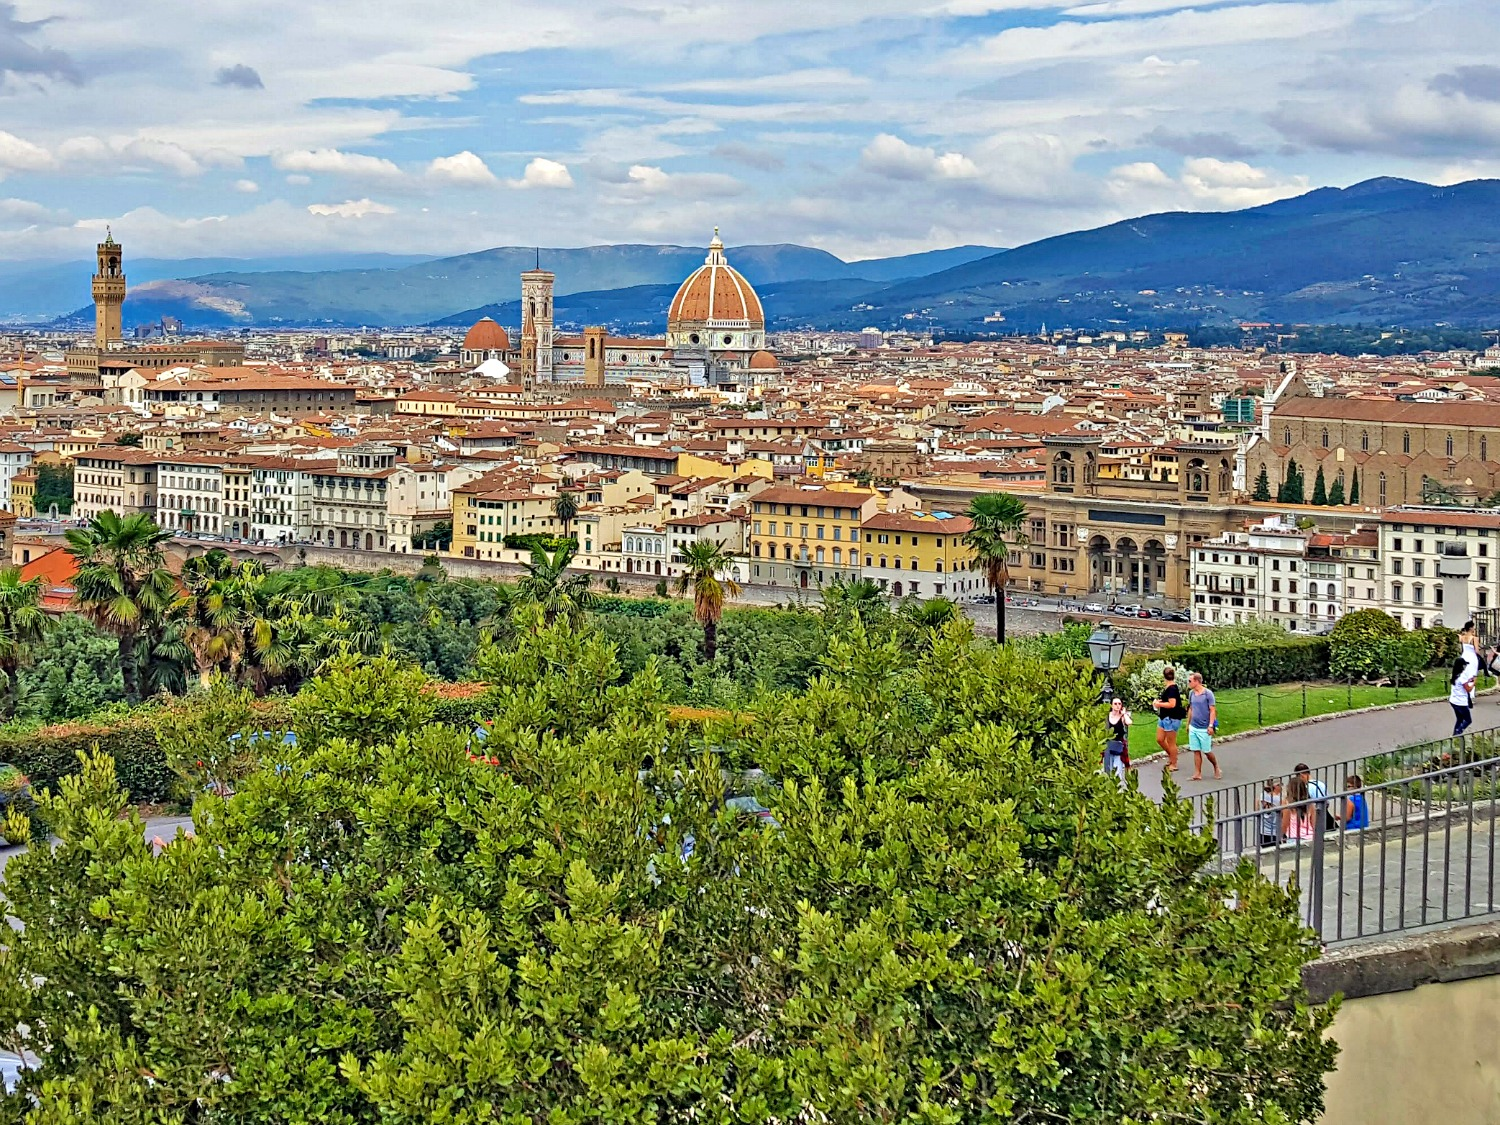 Famous sights in Italy - Piazzale Michelangelo.